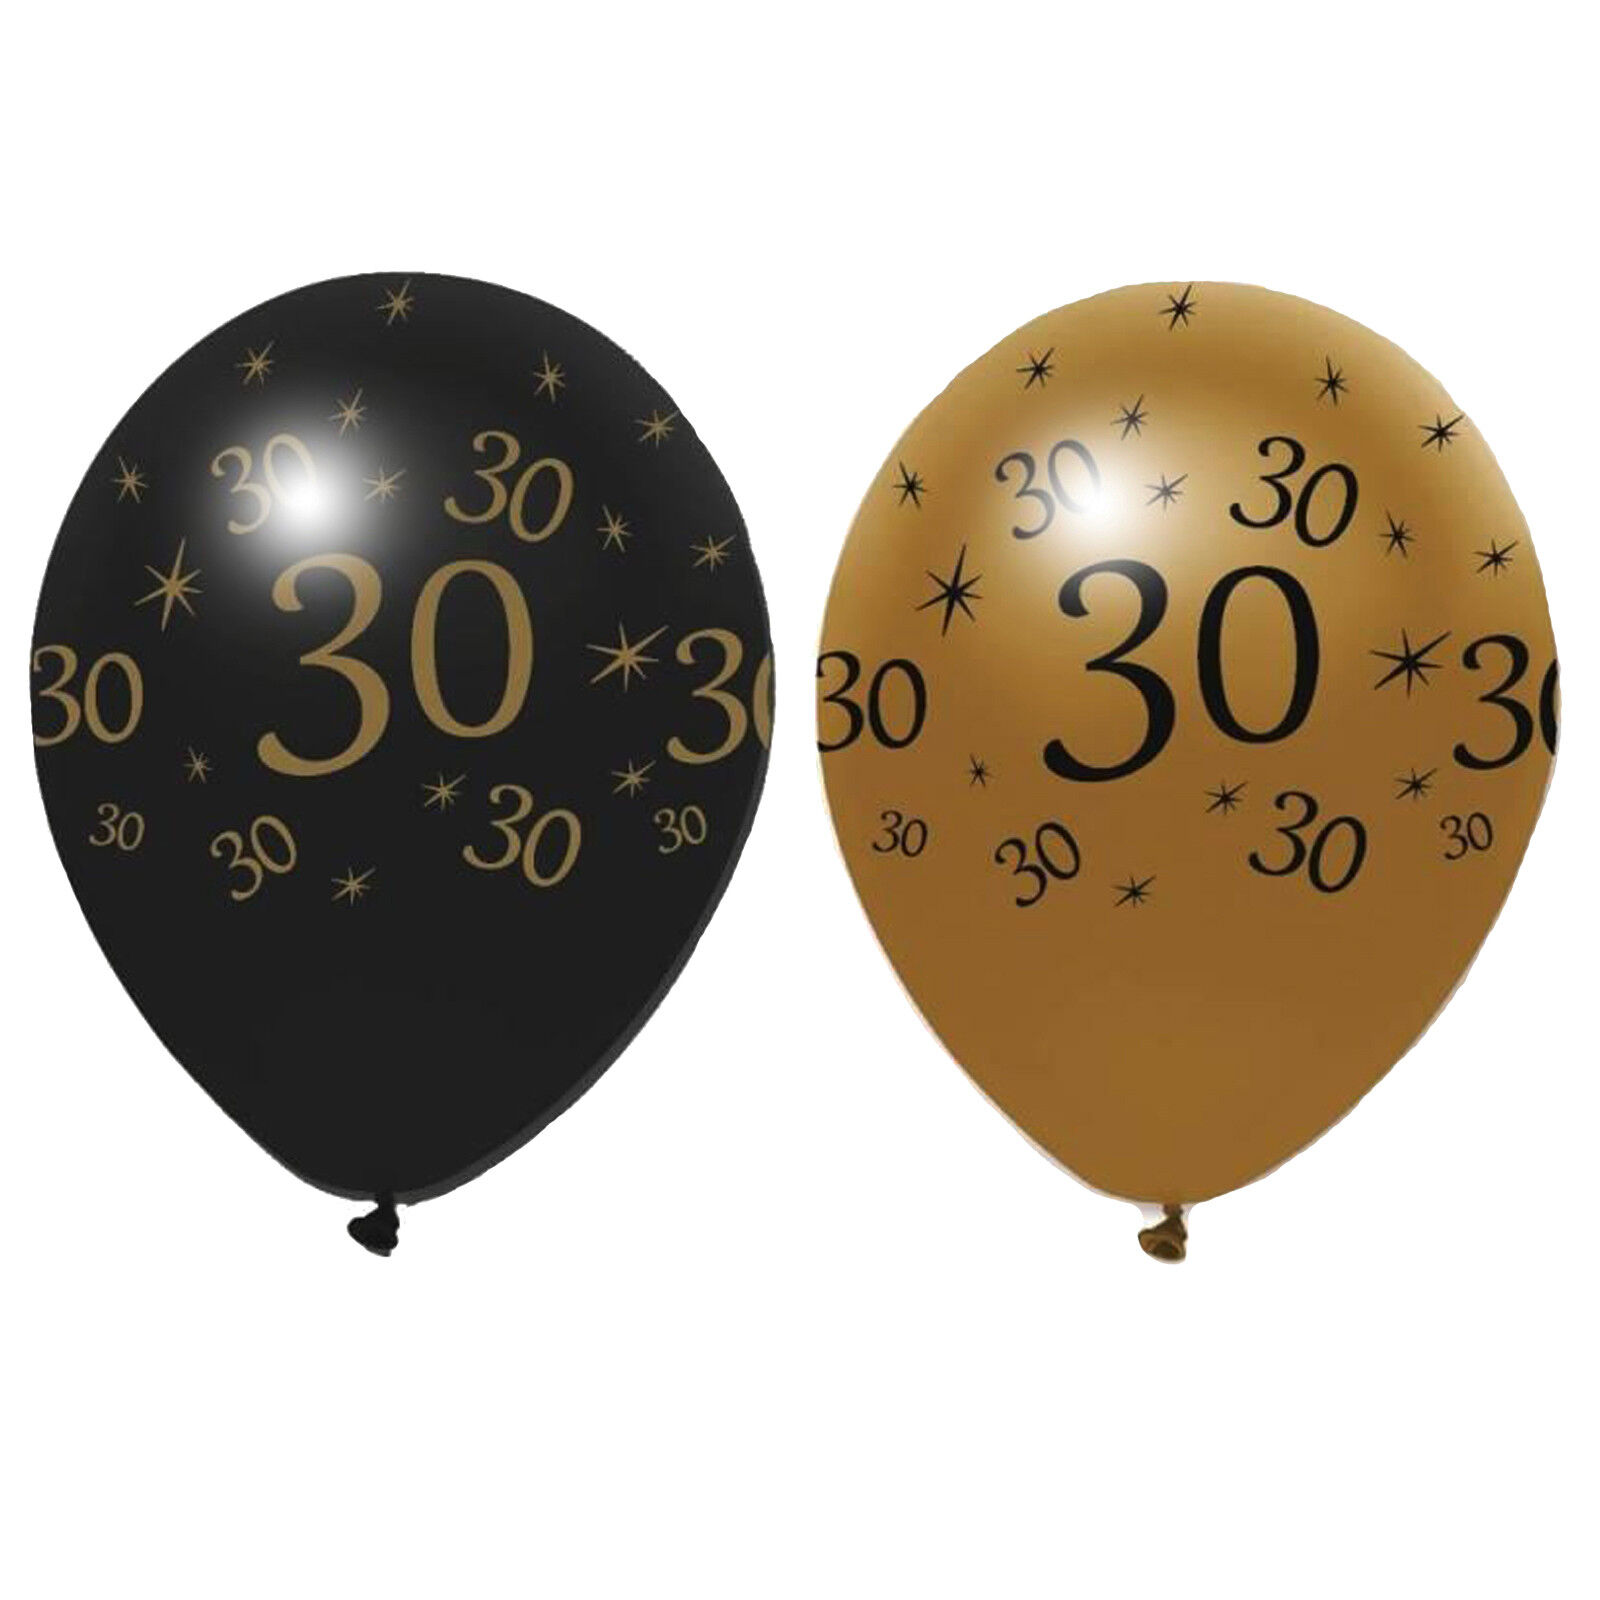 6 x Black /& Gold Latex Balloons 30 Adults 30th Birthday Party Decoration Helium